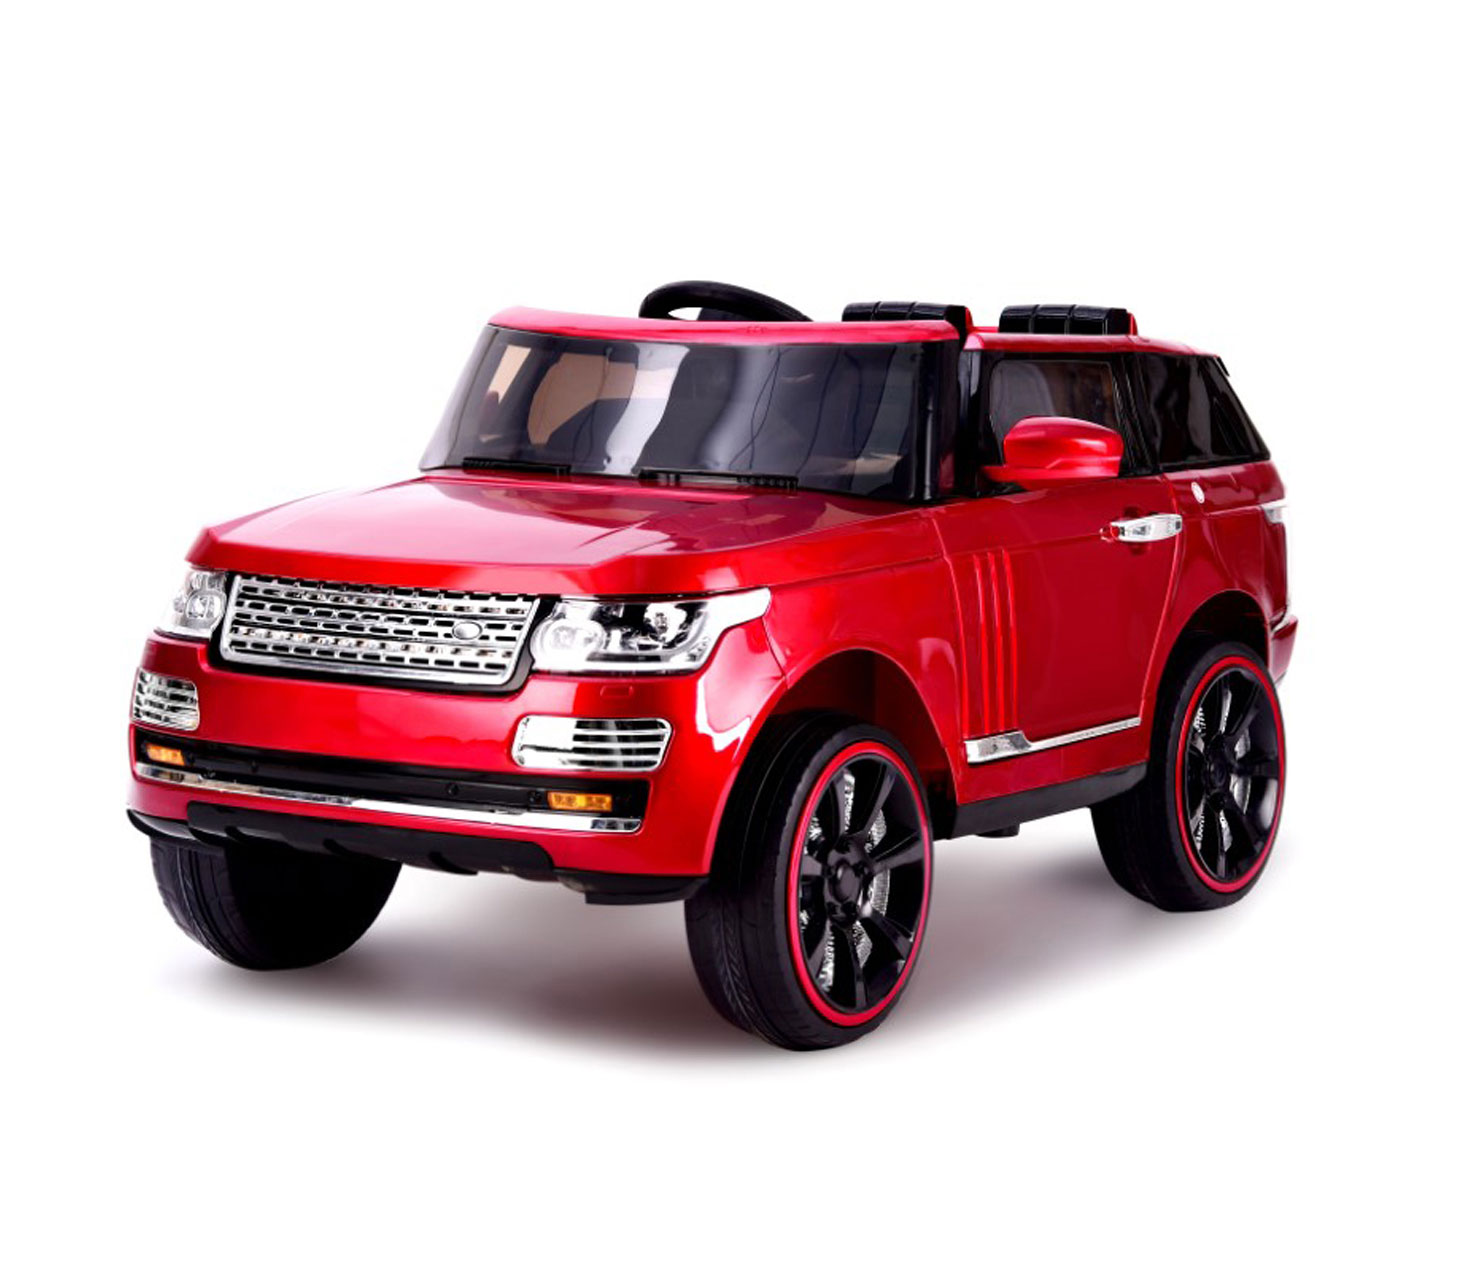 Range Rover Ride On Toy Car For Kids With Remote Control